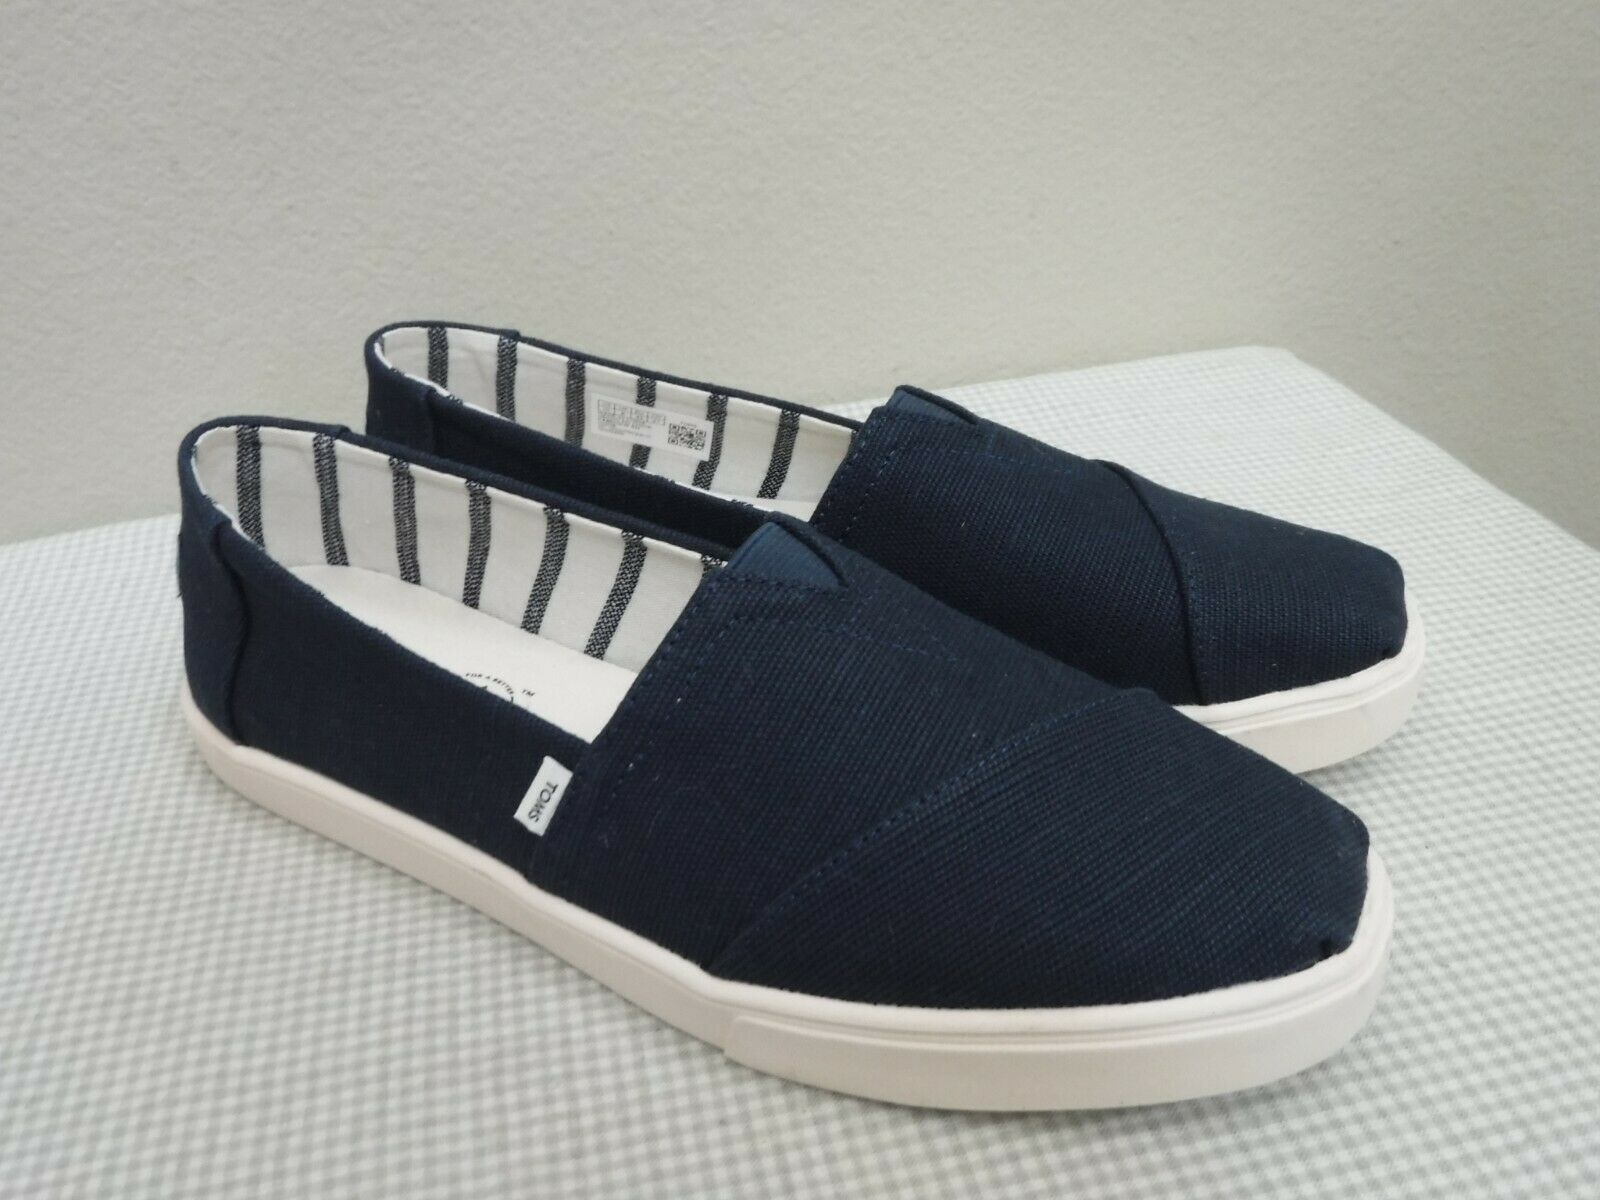 New TOMS HERITAGE CLASSIC EARTHWISE 10 Navy Canvas Slip On Loafers Flats Shoes